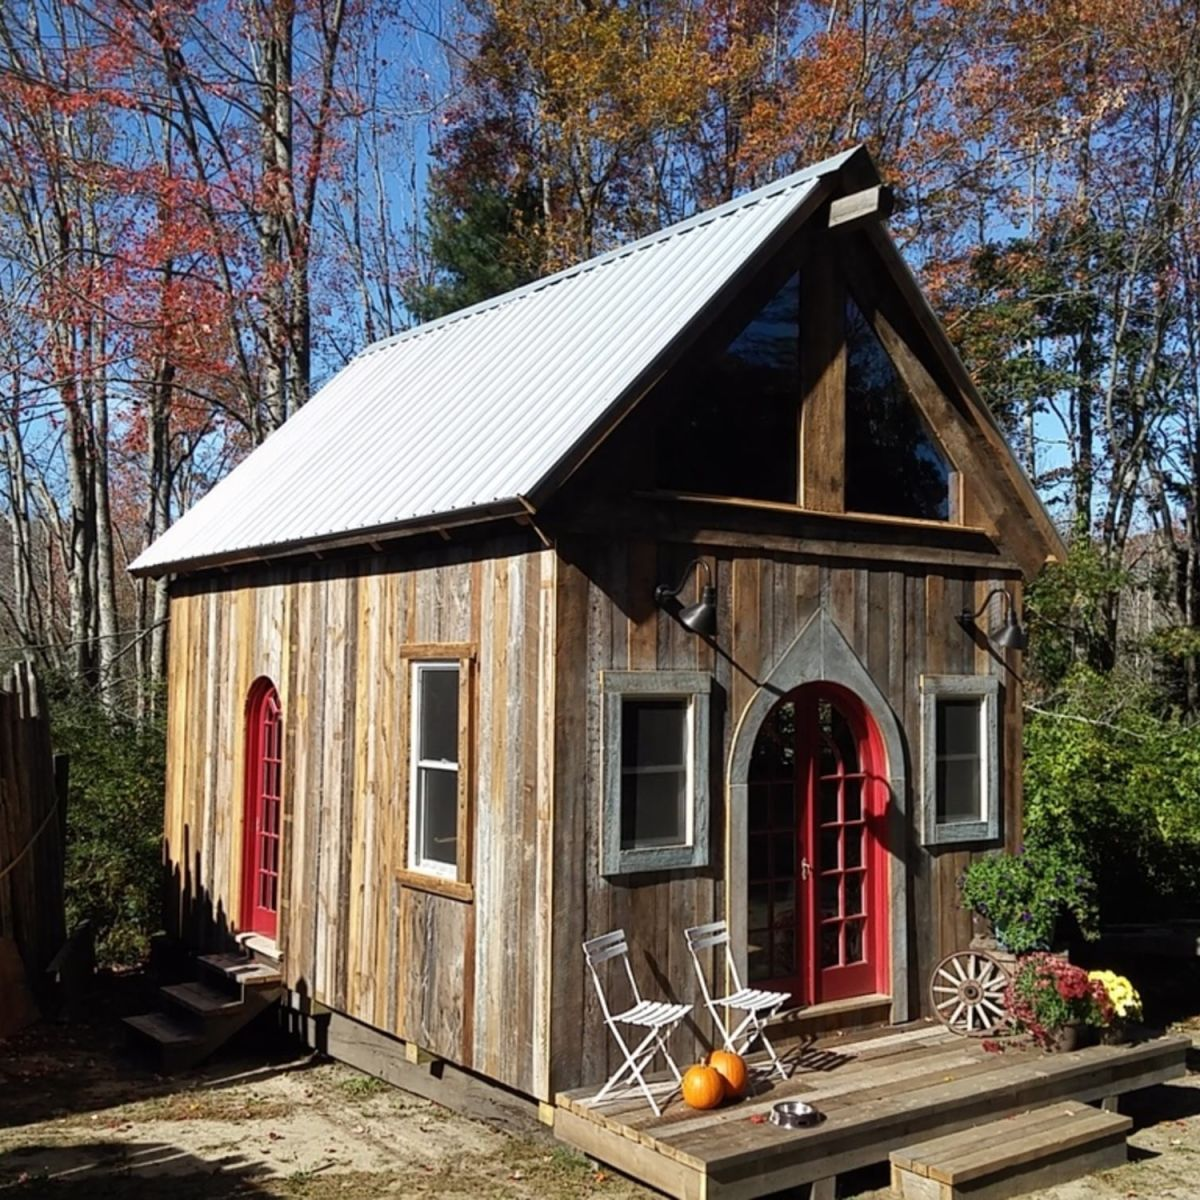 Custom Built Cabin Cabin For Rent In Null Maine Tiny House Listings Custom Built Cabins Small House Tiny House Design